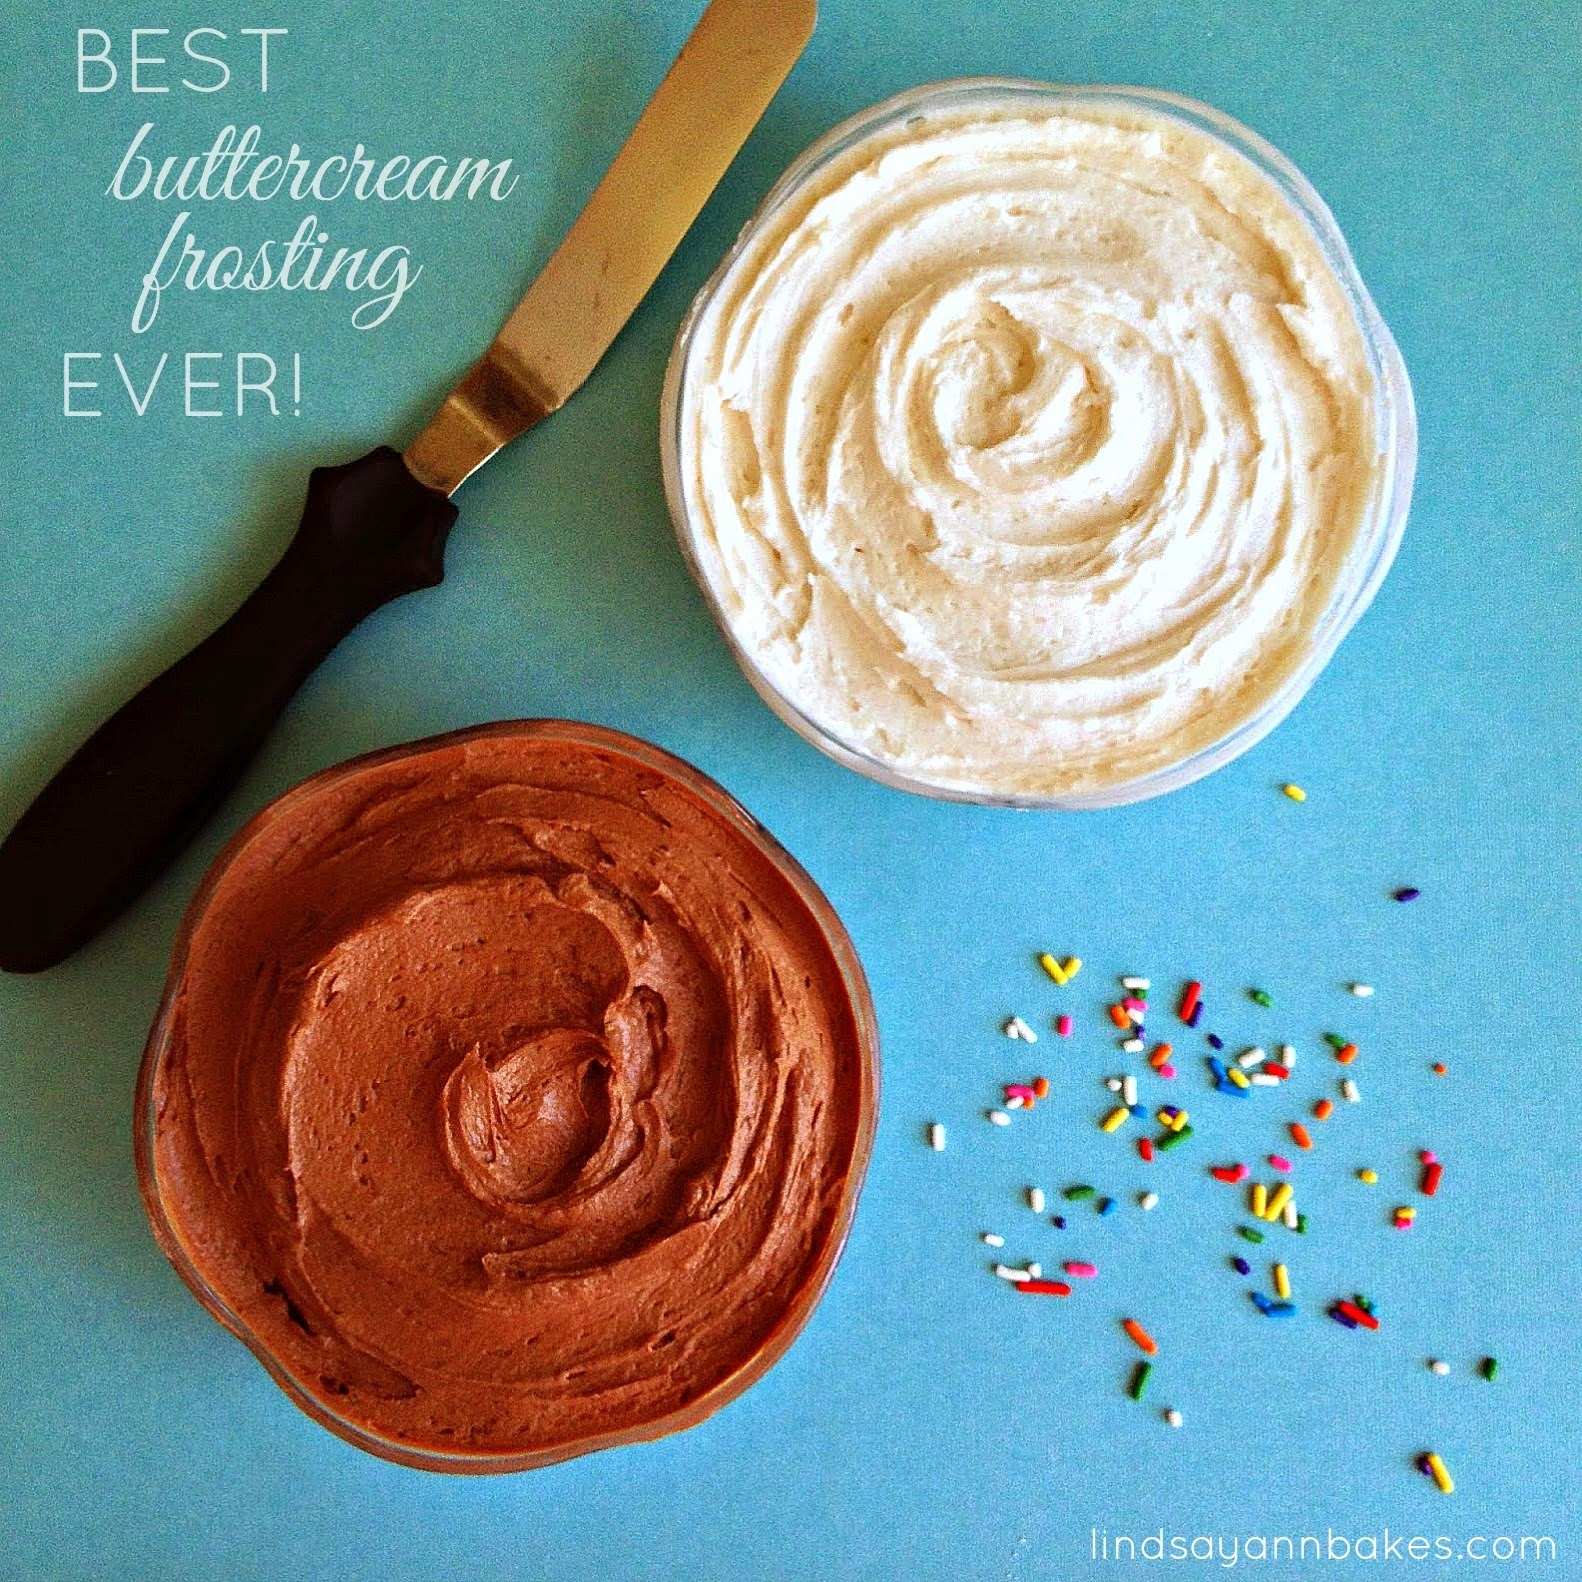 http://blog.dollhousebakeshoppe.com/2014/07/video-best-buttercream-frosting-ever-in.html